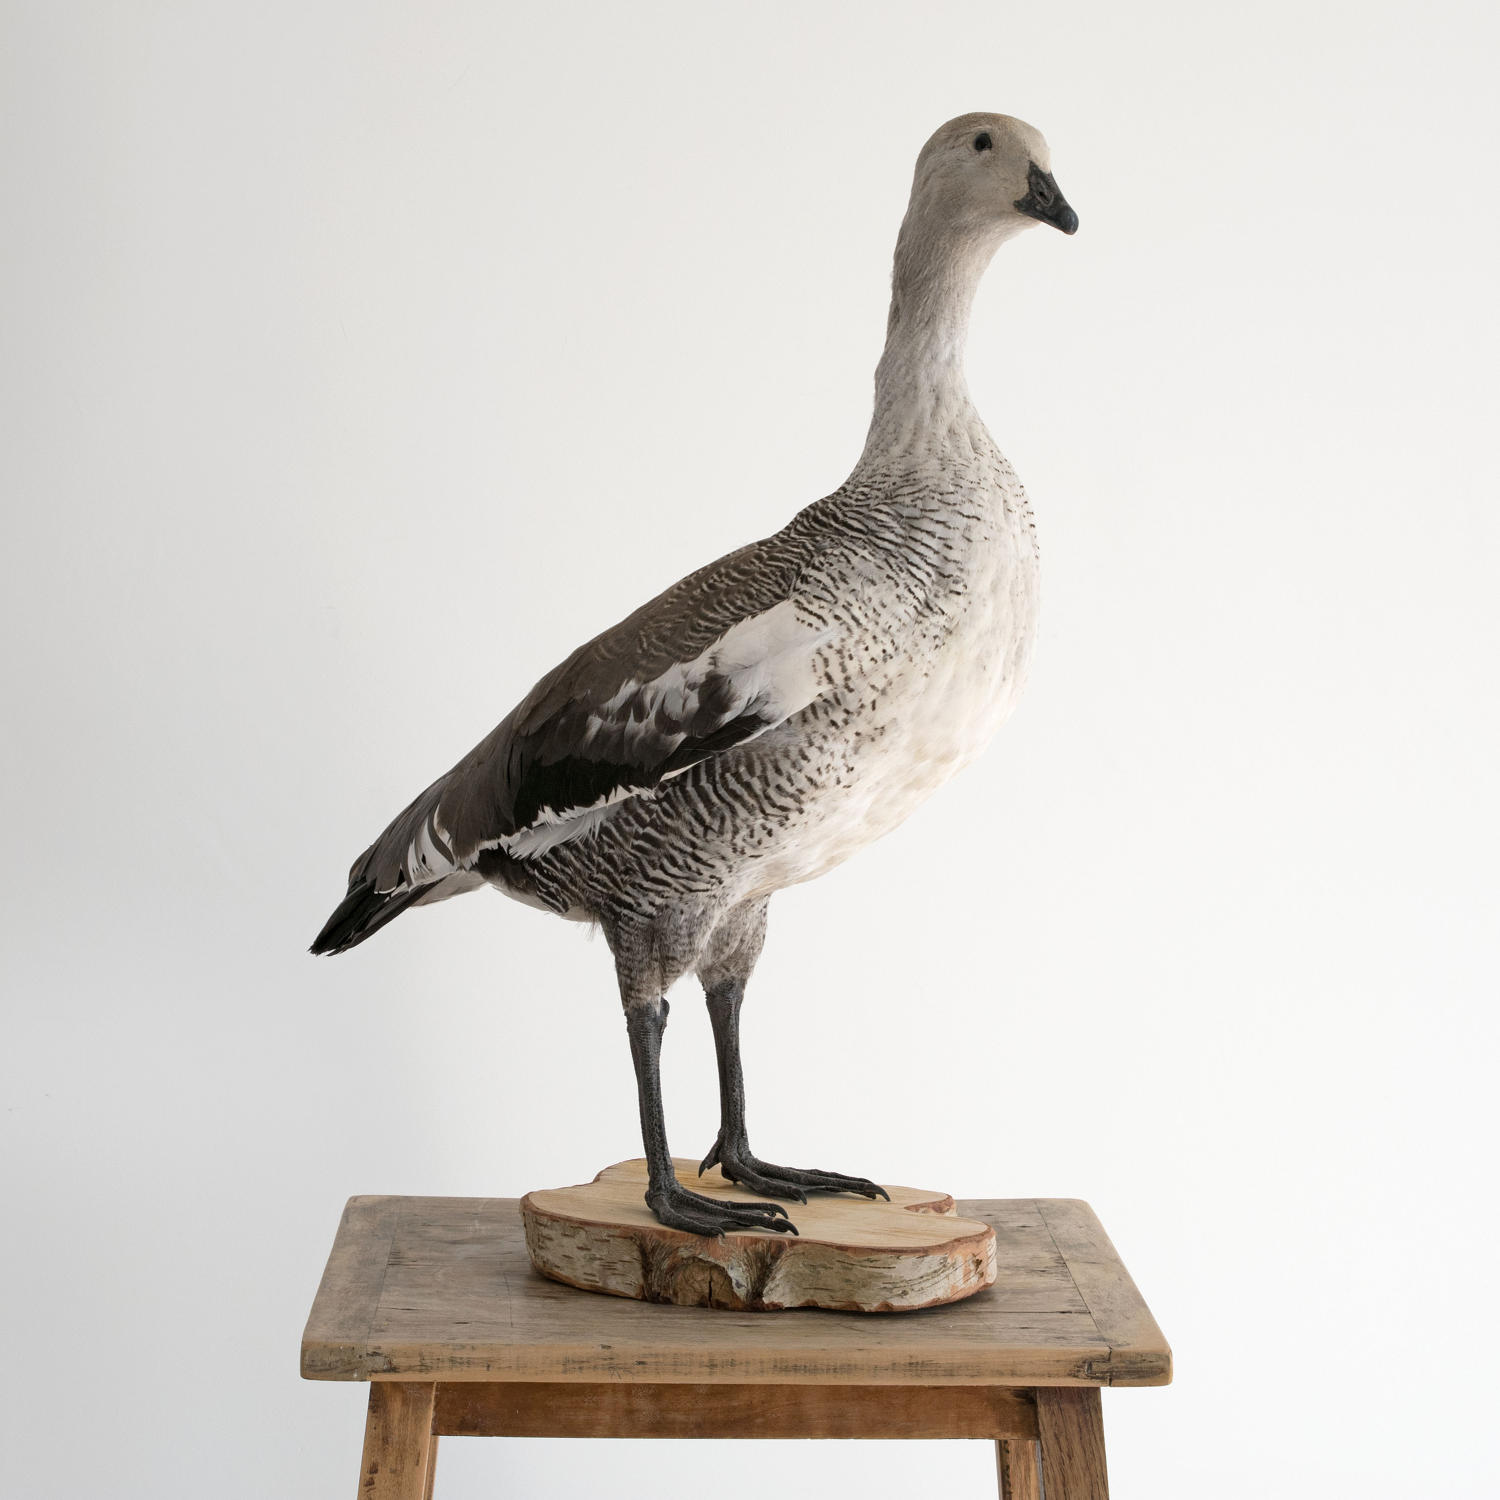 GREATER MAGELLAN GOOSE VINTAGE TAXIDERMY MOUNT